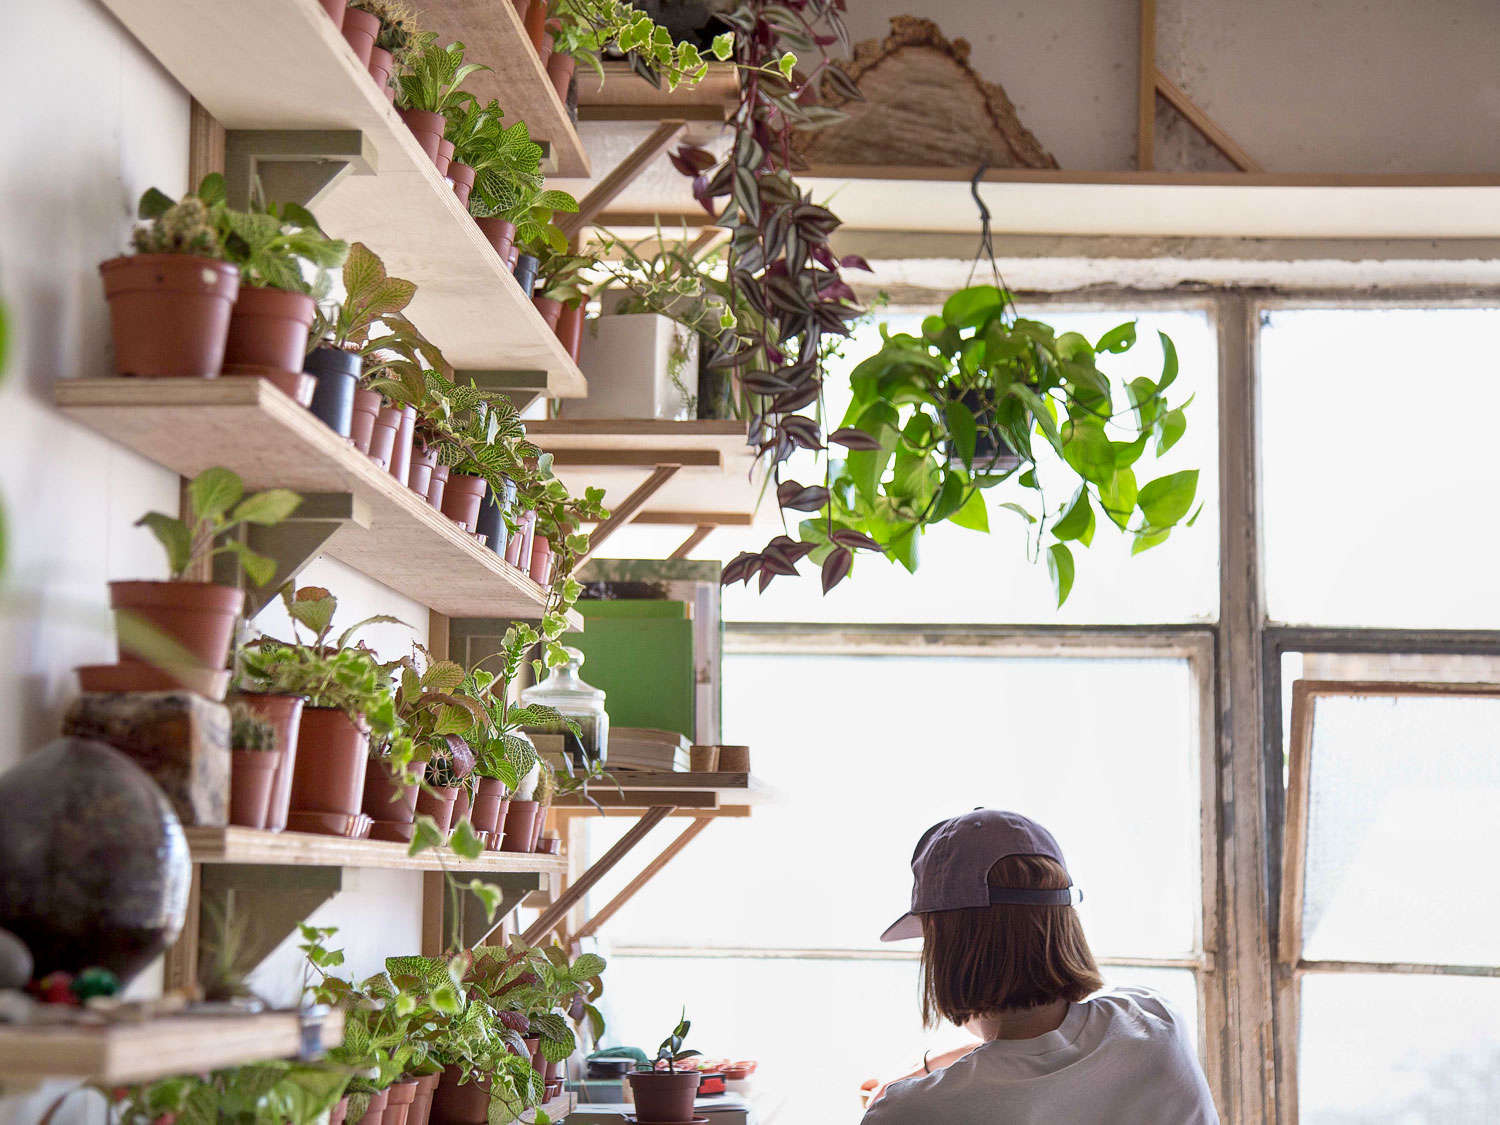 Studio Visit Gardening Under Glass With Emma Sibley Of London